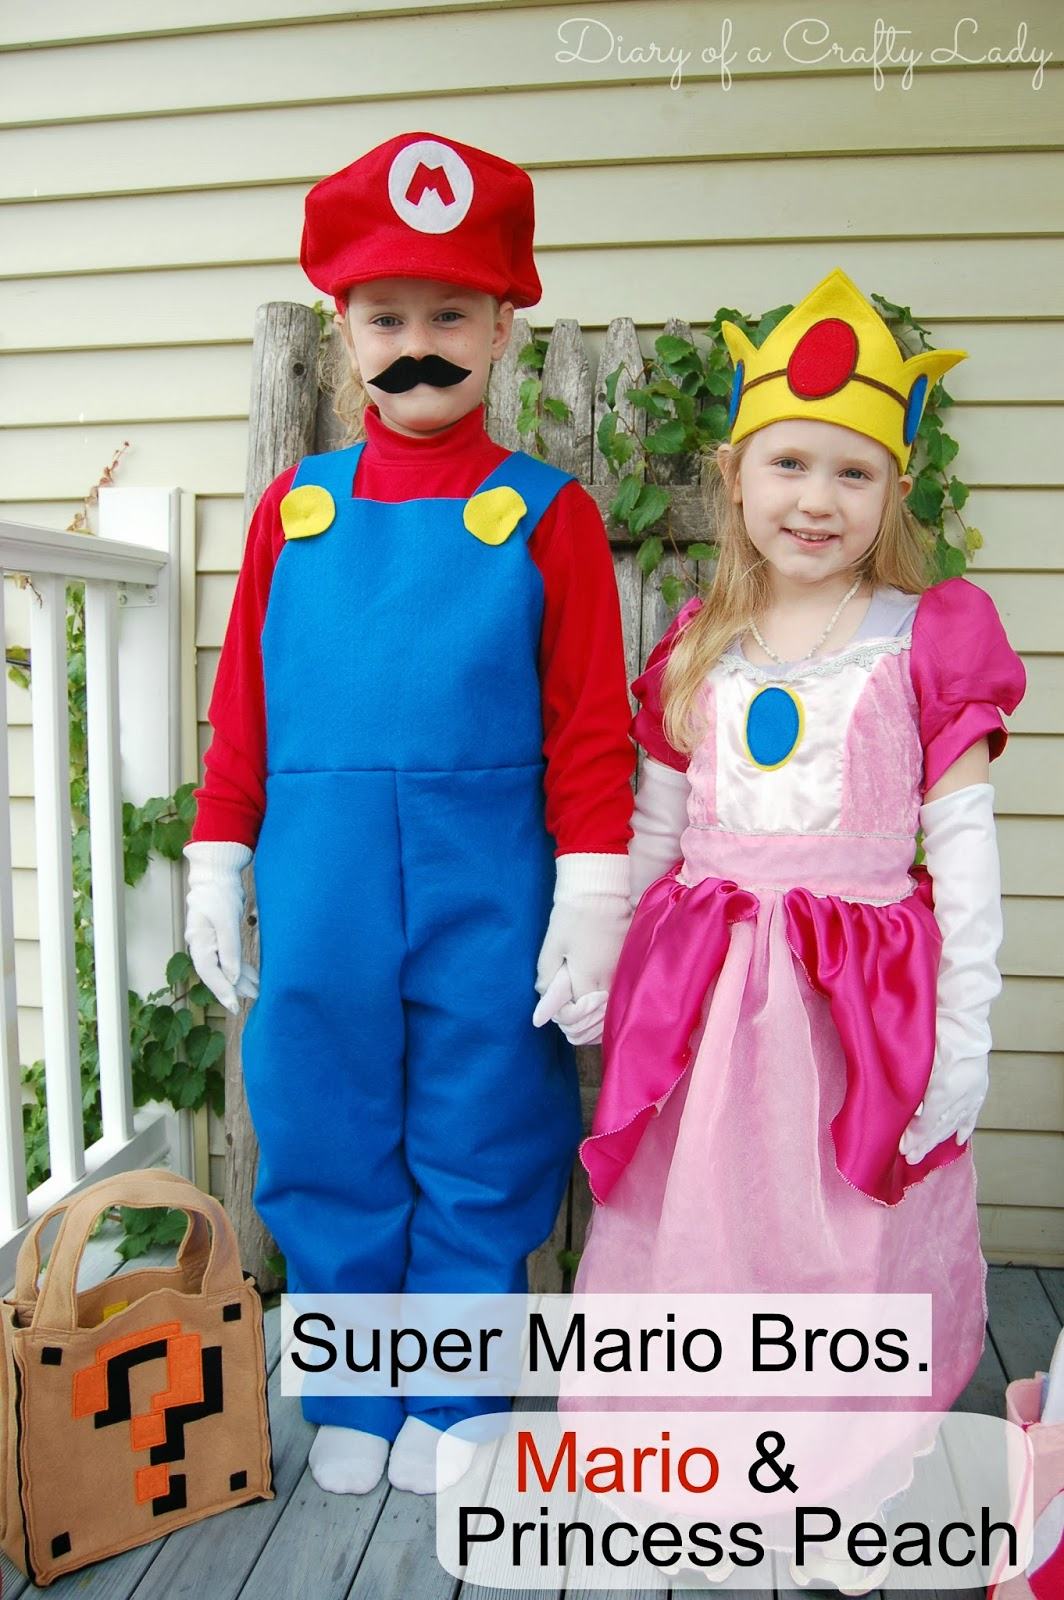 Luigi Bowser Jr. u0026 Star Super Mario Brothers Halloween!  sc 1 st  Diary of a Crafty Lady & Diary of a Crafty Lady: Luigi Bowser Jr. u0026 Star Super Mario ...